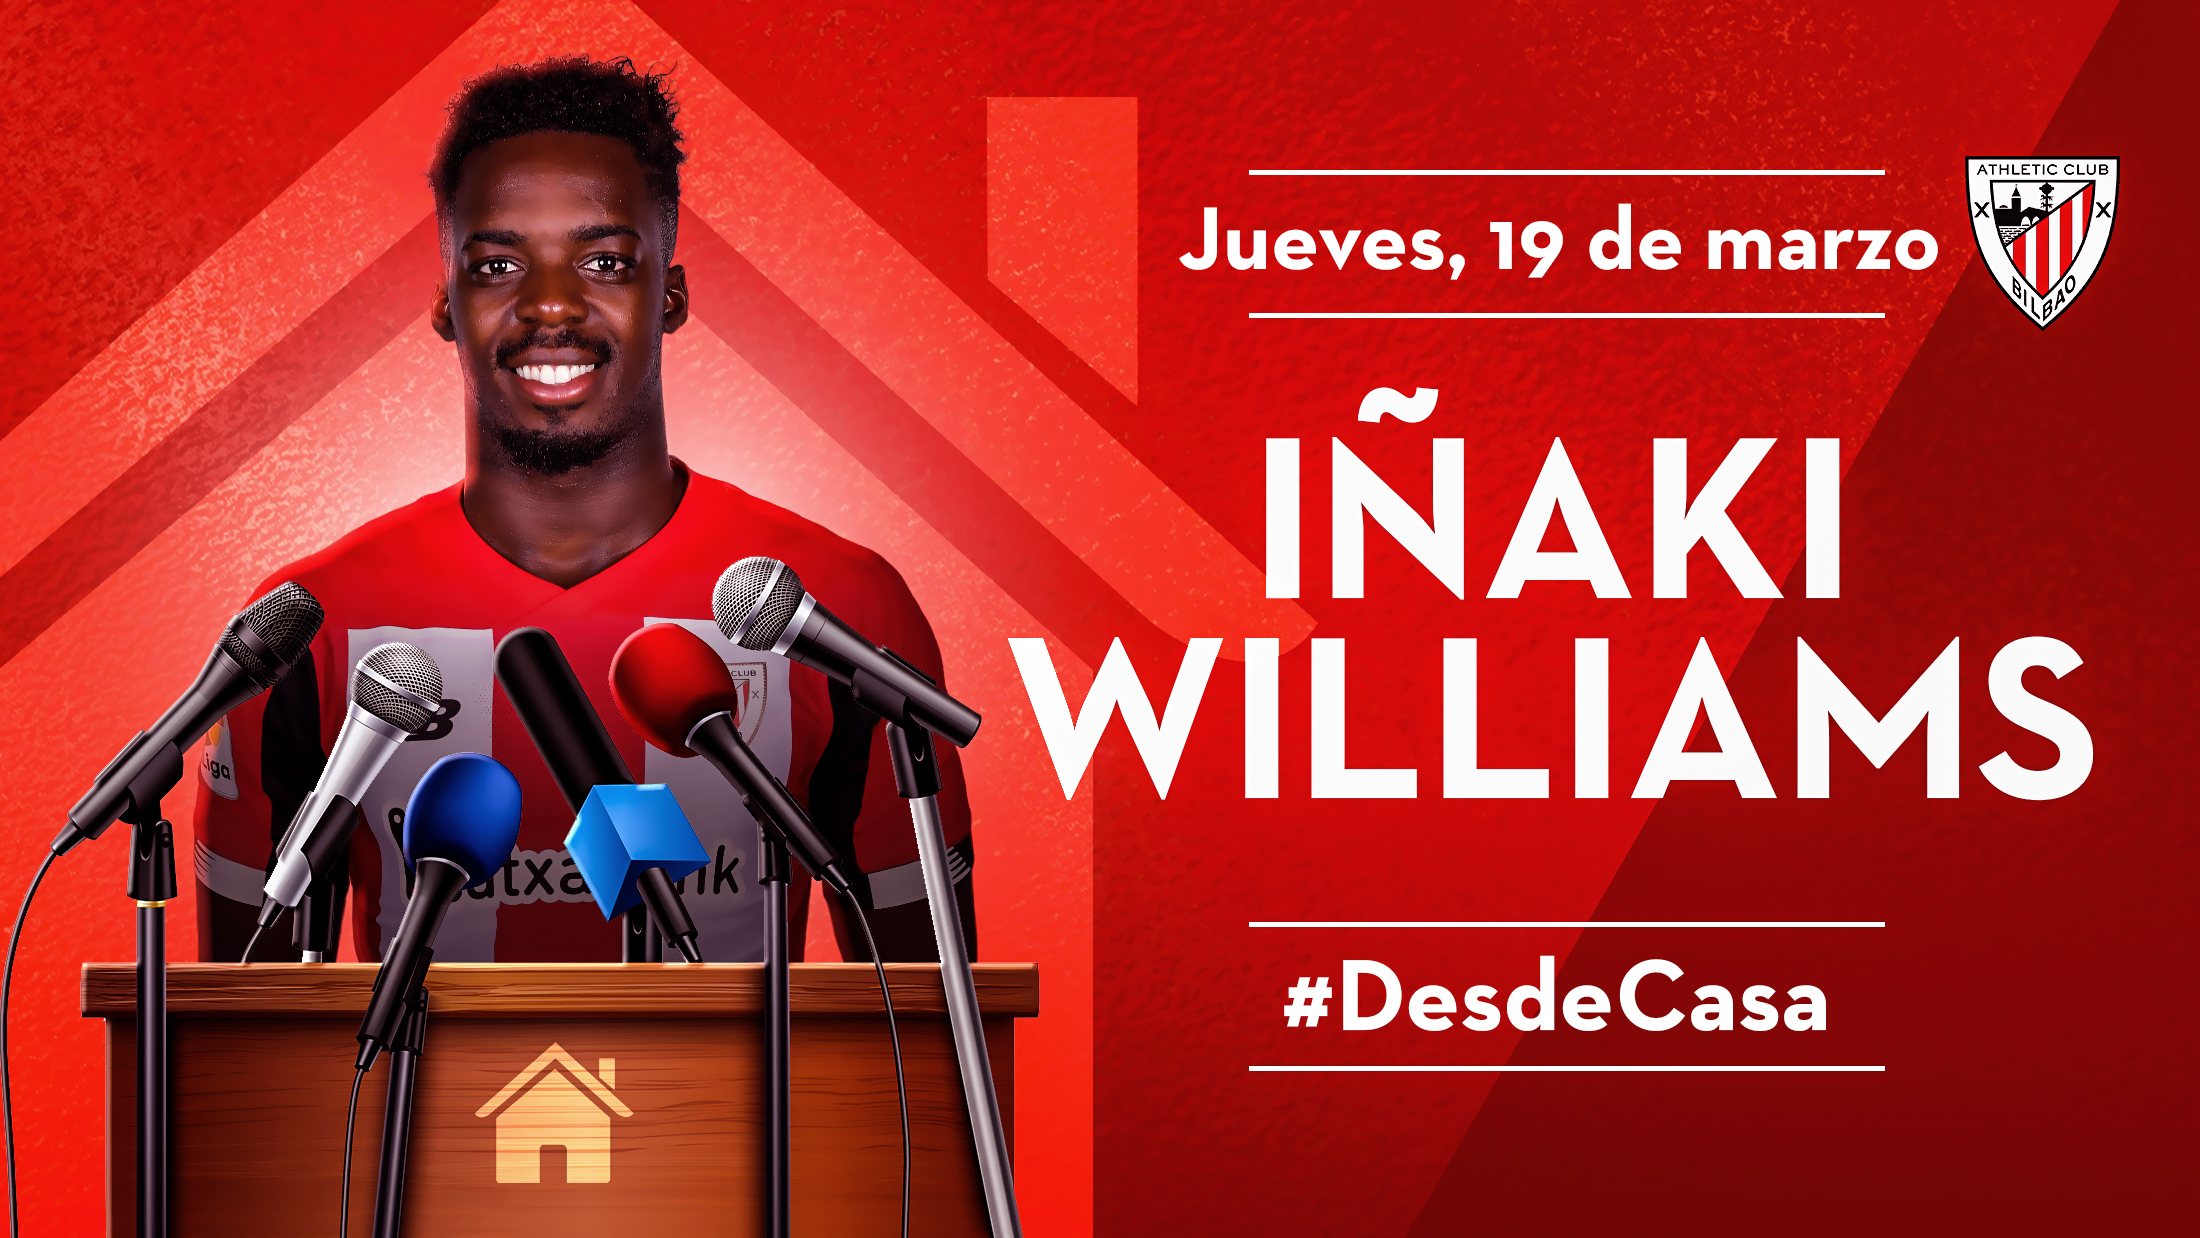 Williams responde #DesdeCasa